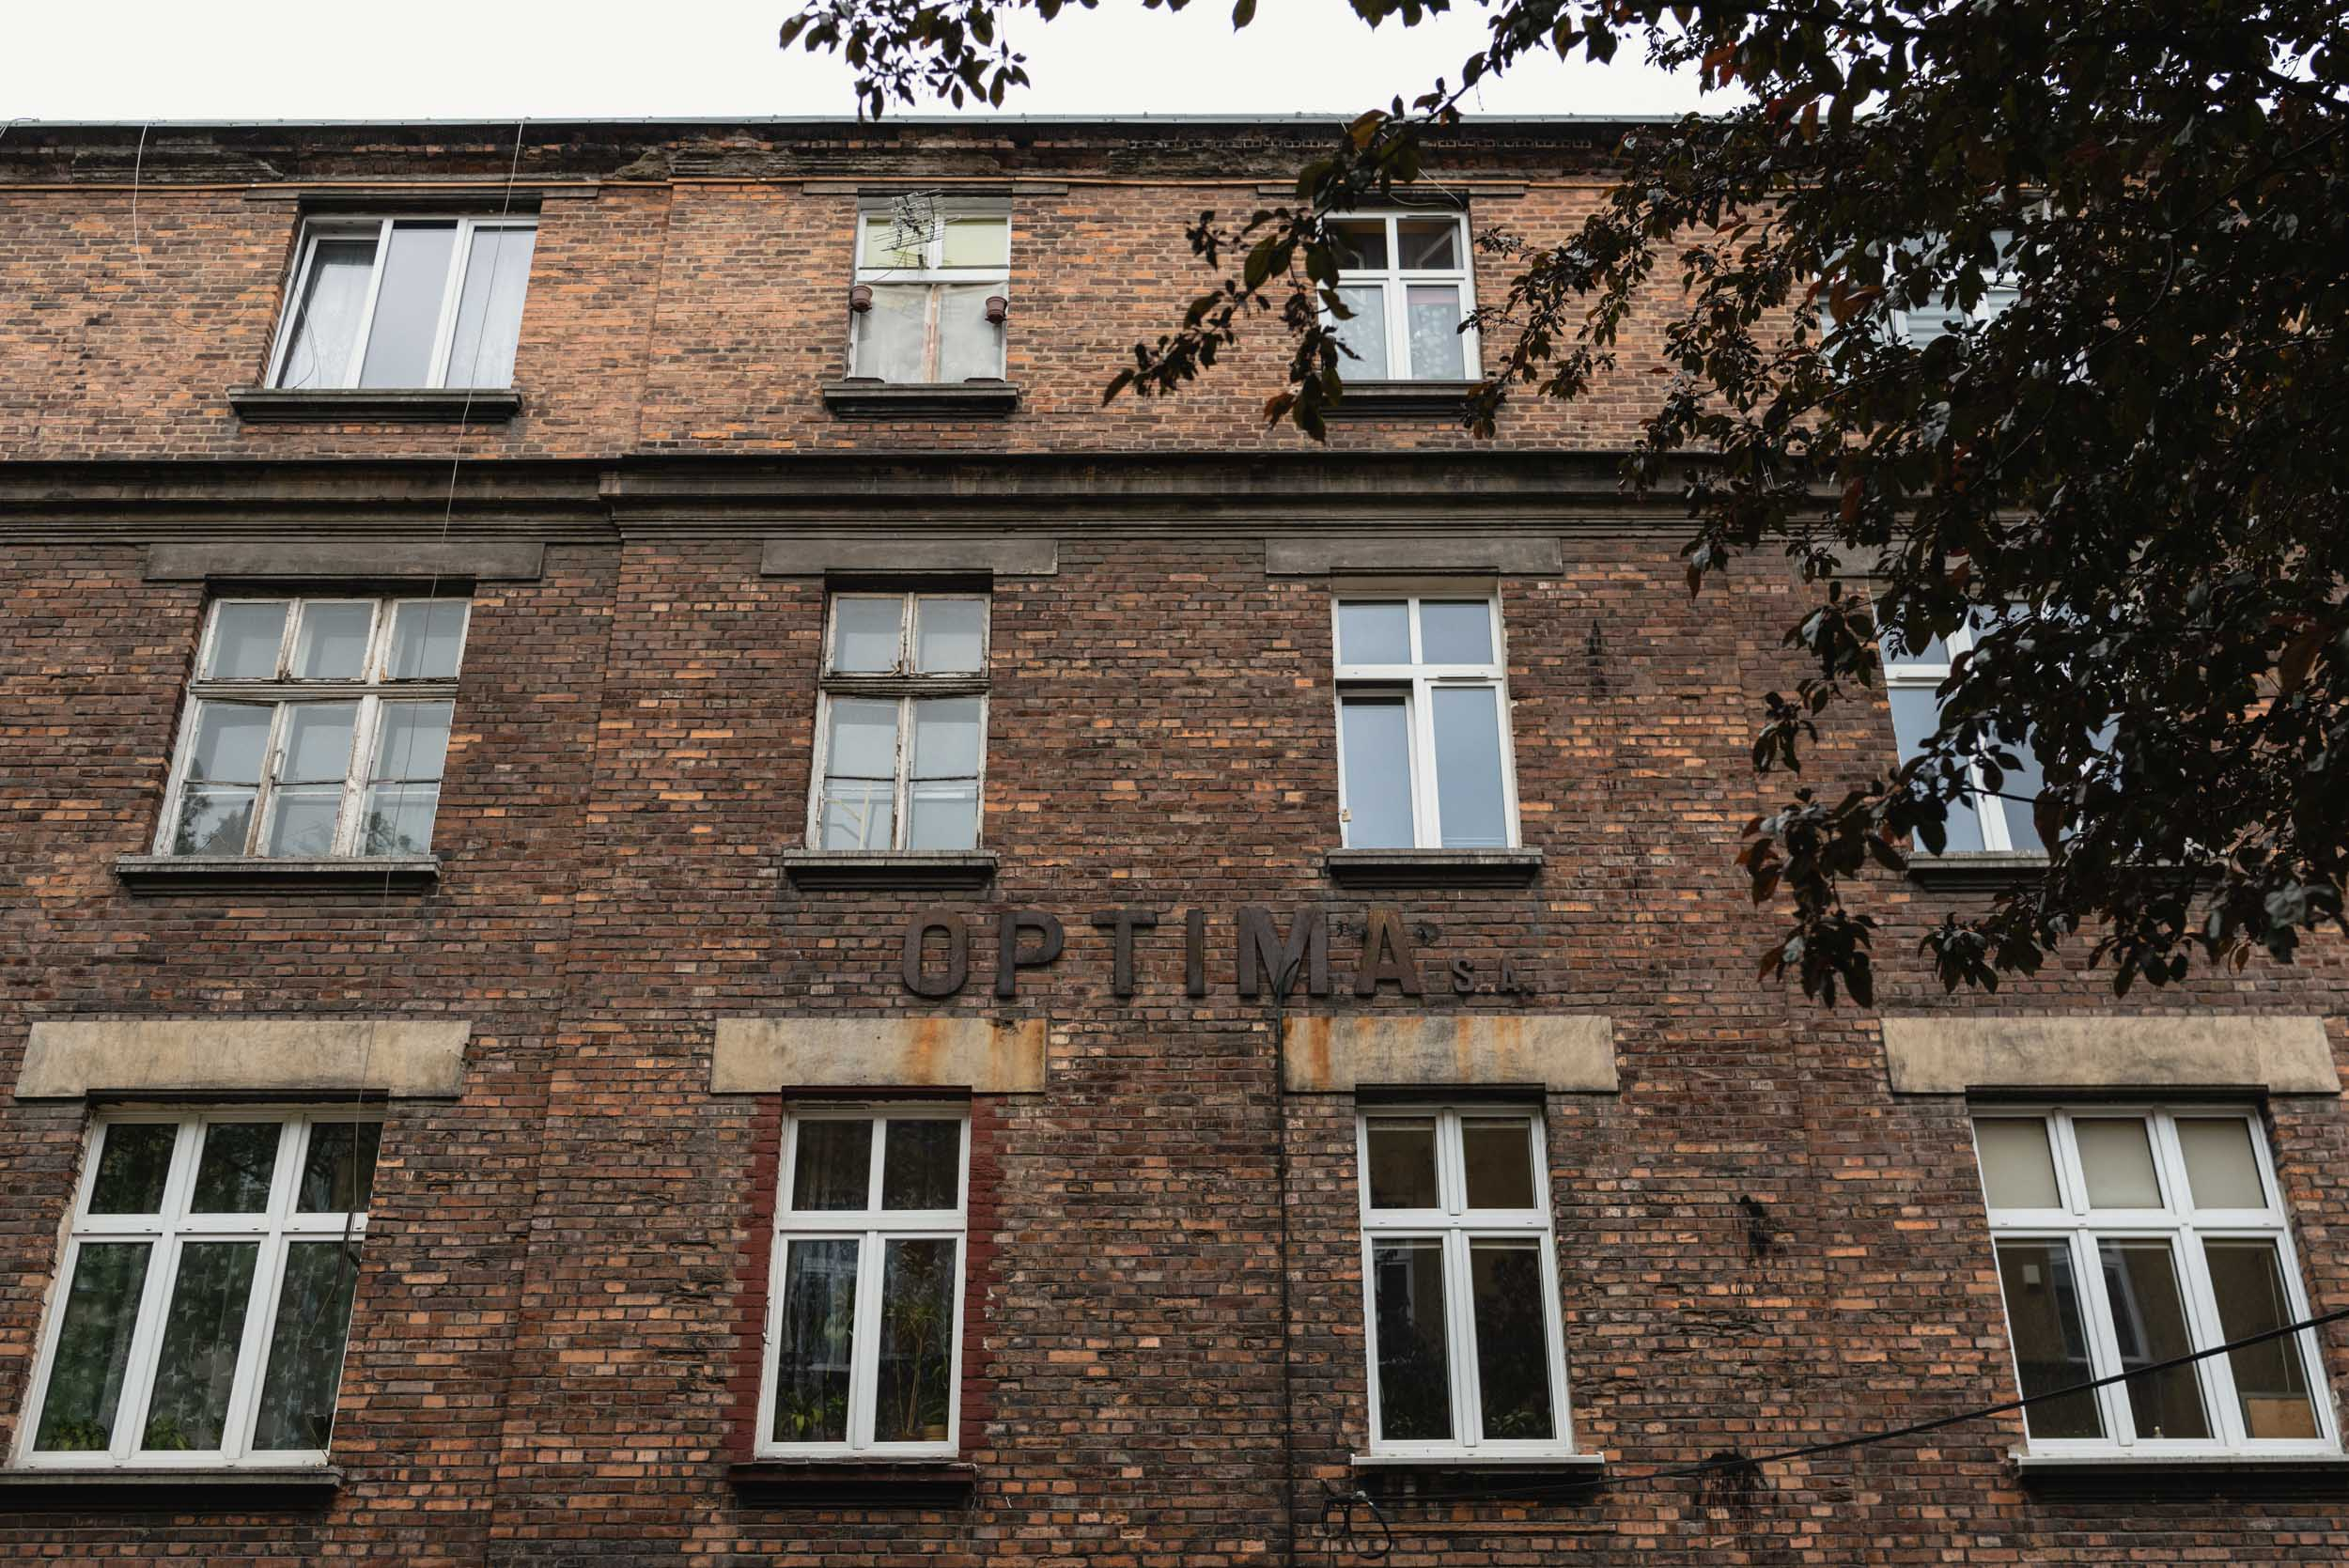 Optima Factory building Krakow Jewish Ghetto